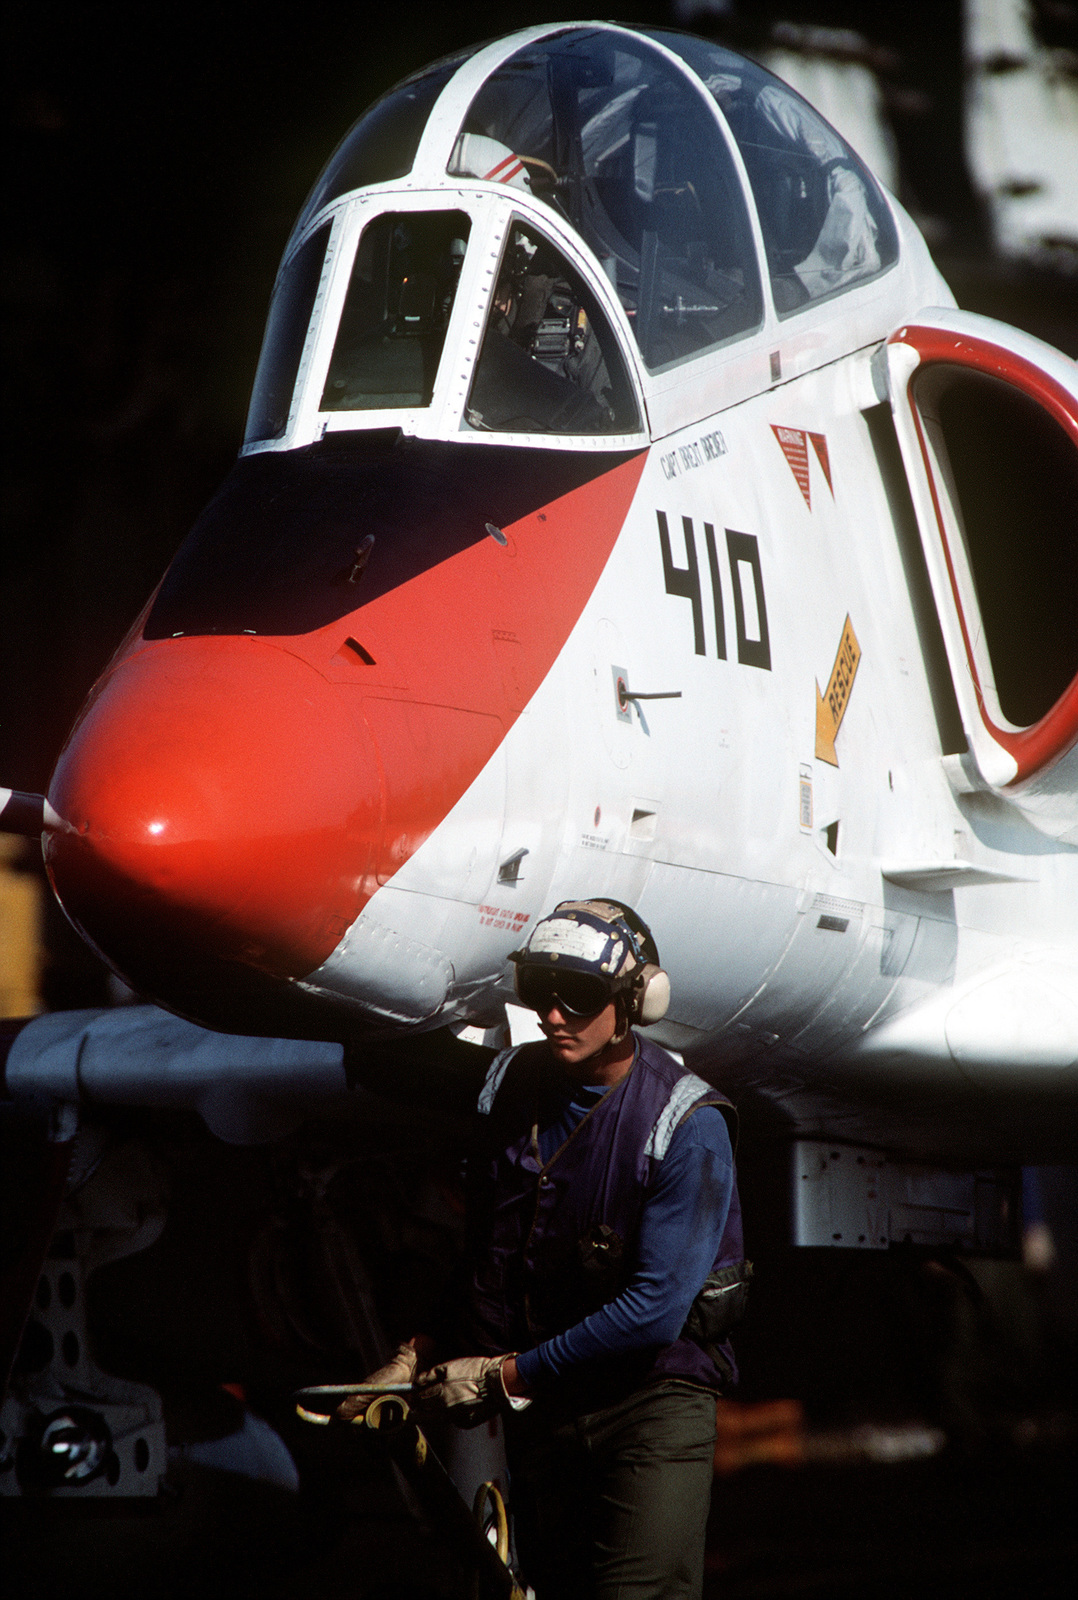 An aircraft handler uses a tiller bar to steer a TA-4J Skyhawk aircraft toward one of the catapults on the flight deck of the aircraft carrier USS FORRESTAL (CV 59). The FORRESTAL will assume the role of the Navy's training carrier in early 1992, taking over for the auxiliary aircraft landing training ship USS LEXINGTON (AVT 16)